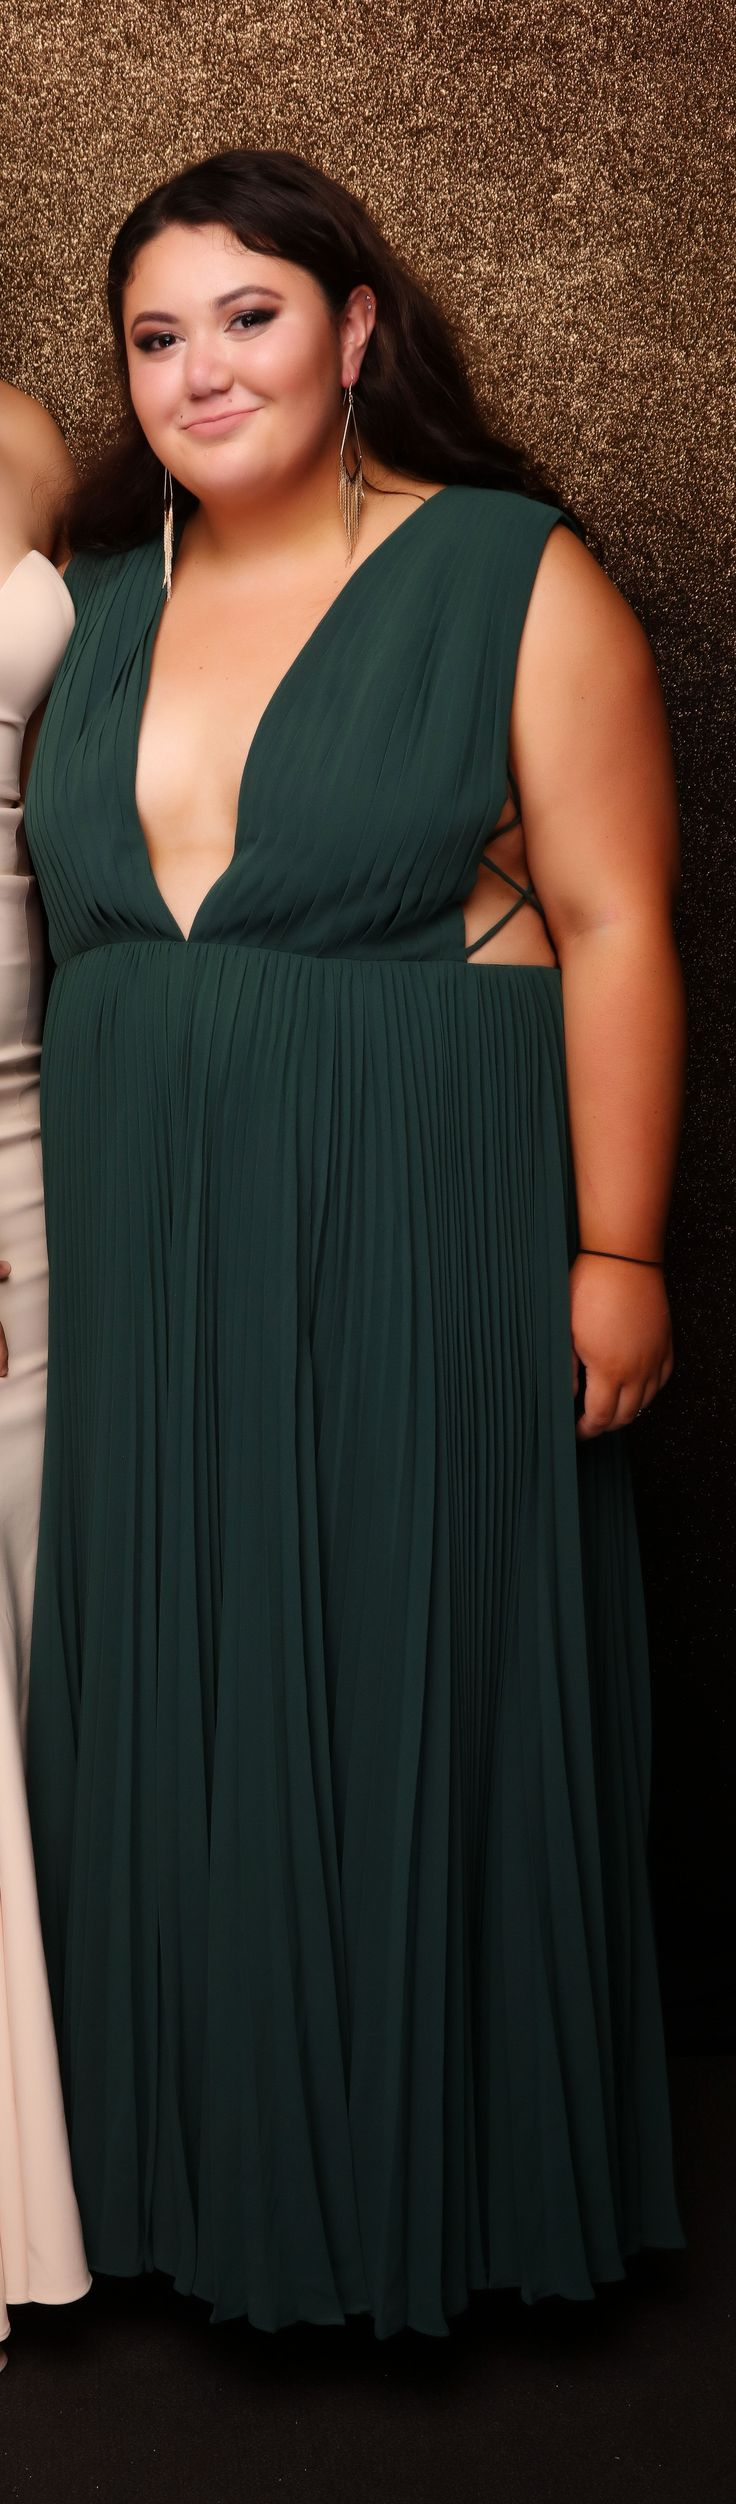 EGGS Y13 School Ball 2017. Absolutely adore this green gown!